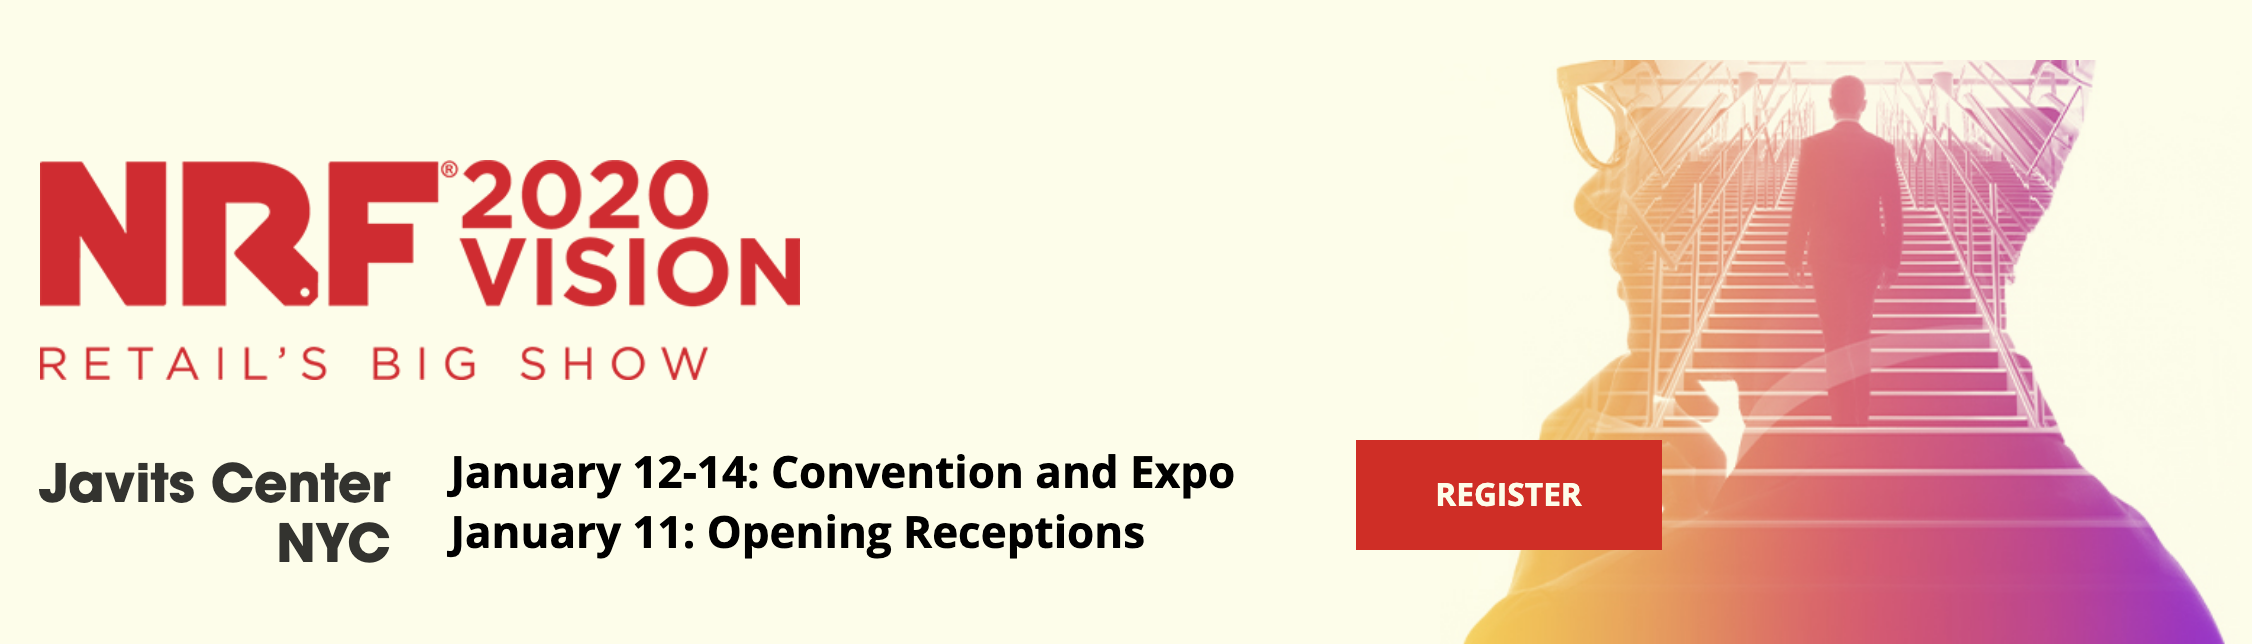 NRF 2020 SHOW banner.png